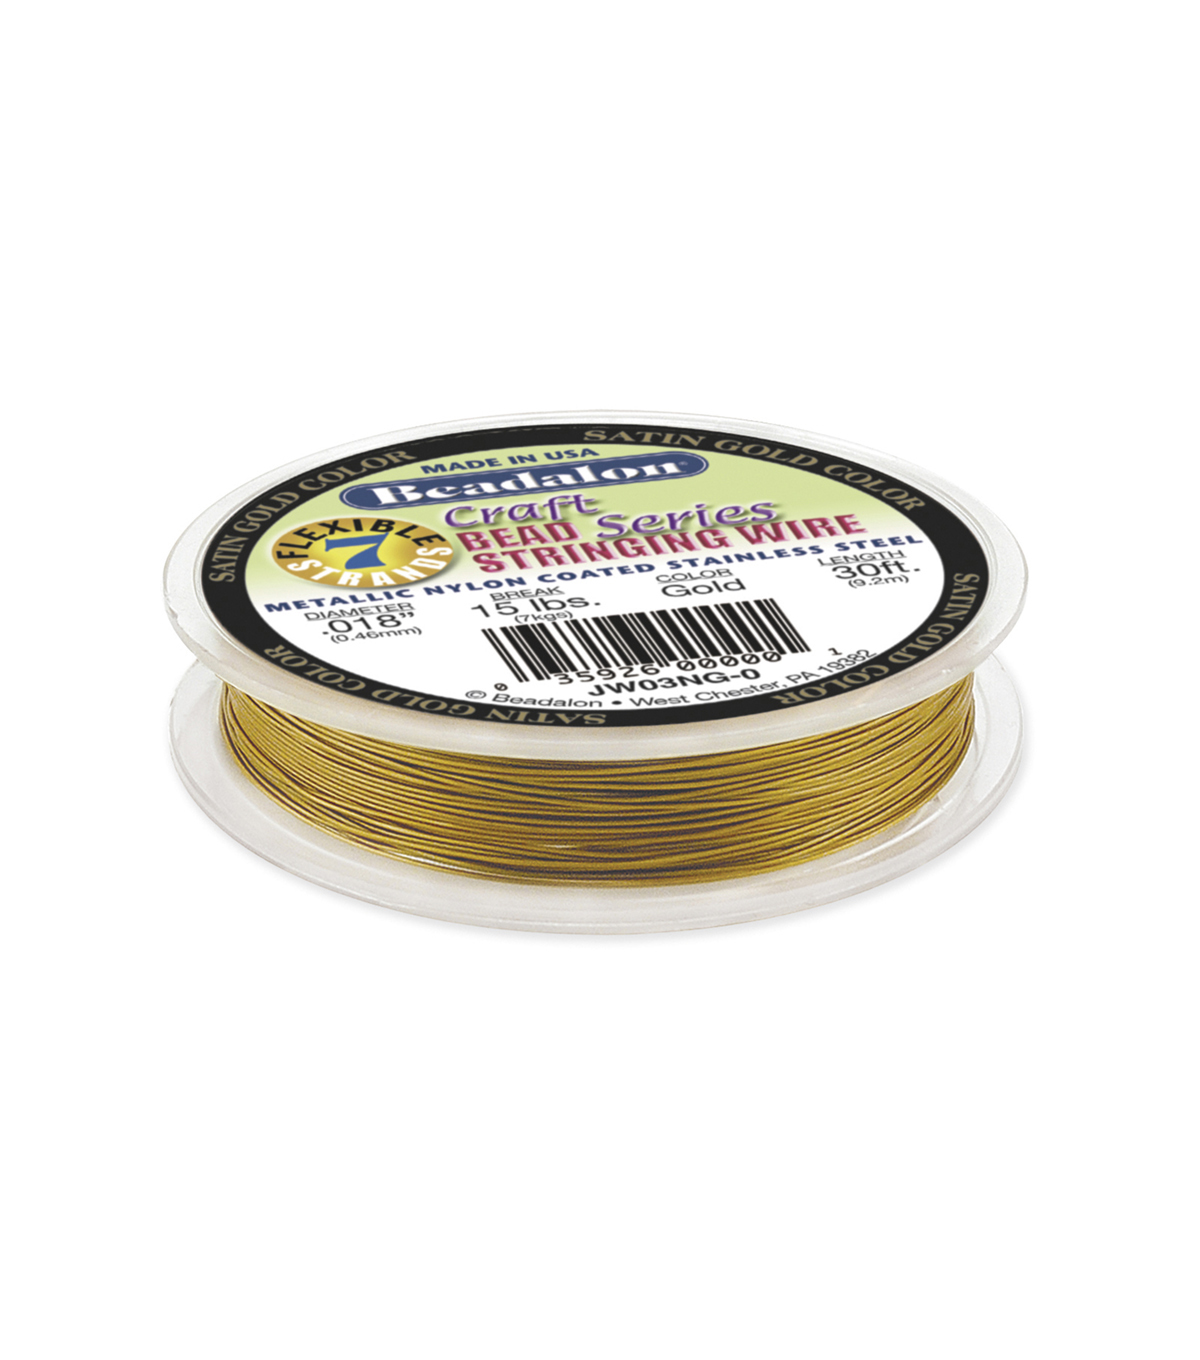 Metallic Nylon Coated Stainless Steel Wire, Gold Color, .018 inch, 30ft.